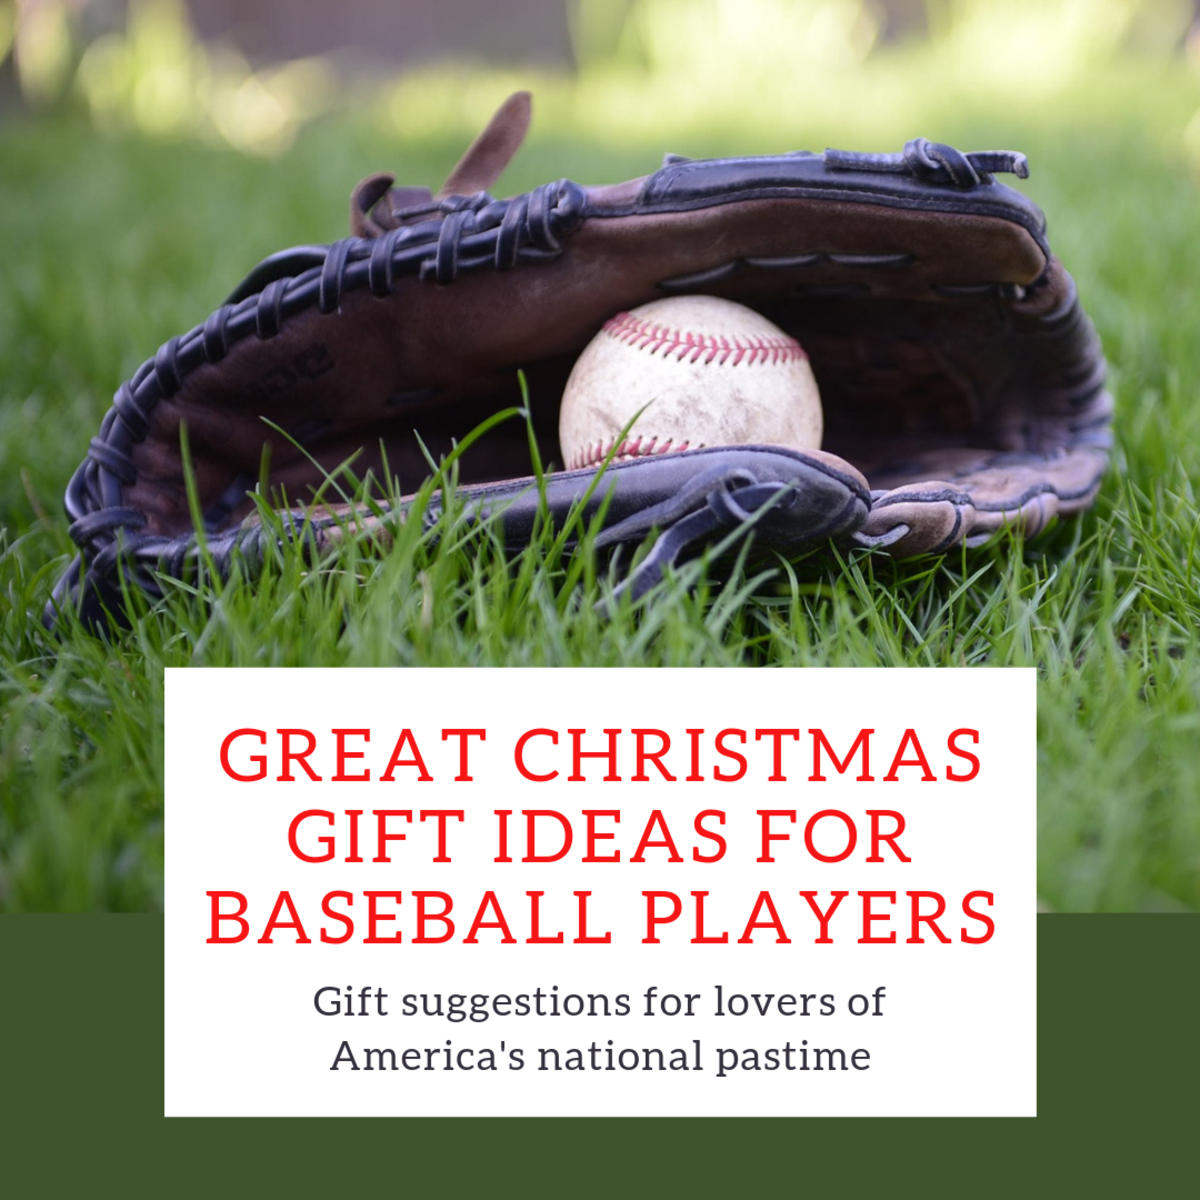 This guide will provide a long list of potential gift ideas for the baseball-lover in your life.